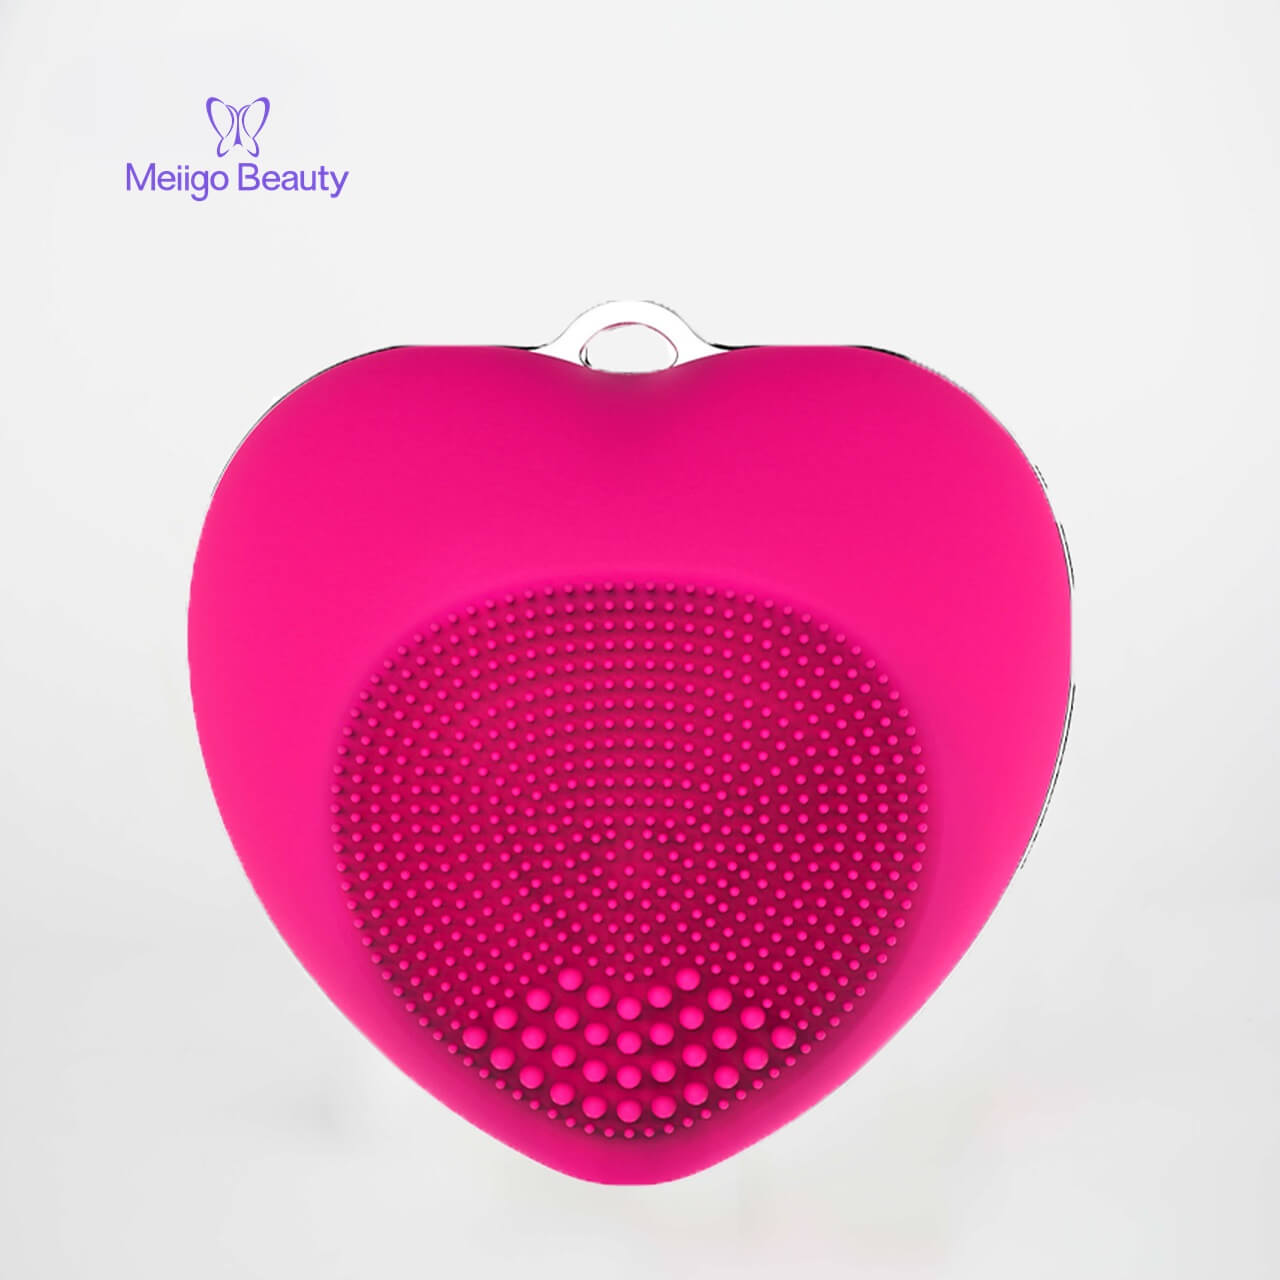 Meiigo beauty heart shape facial brush BR 002 2 - Facial cleansing brush mini silicone sonic face massager  BR-002